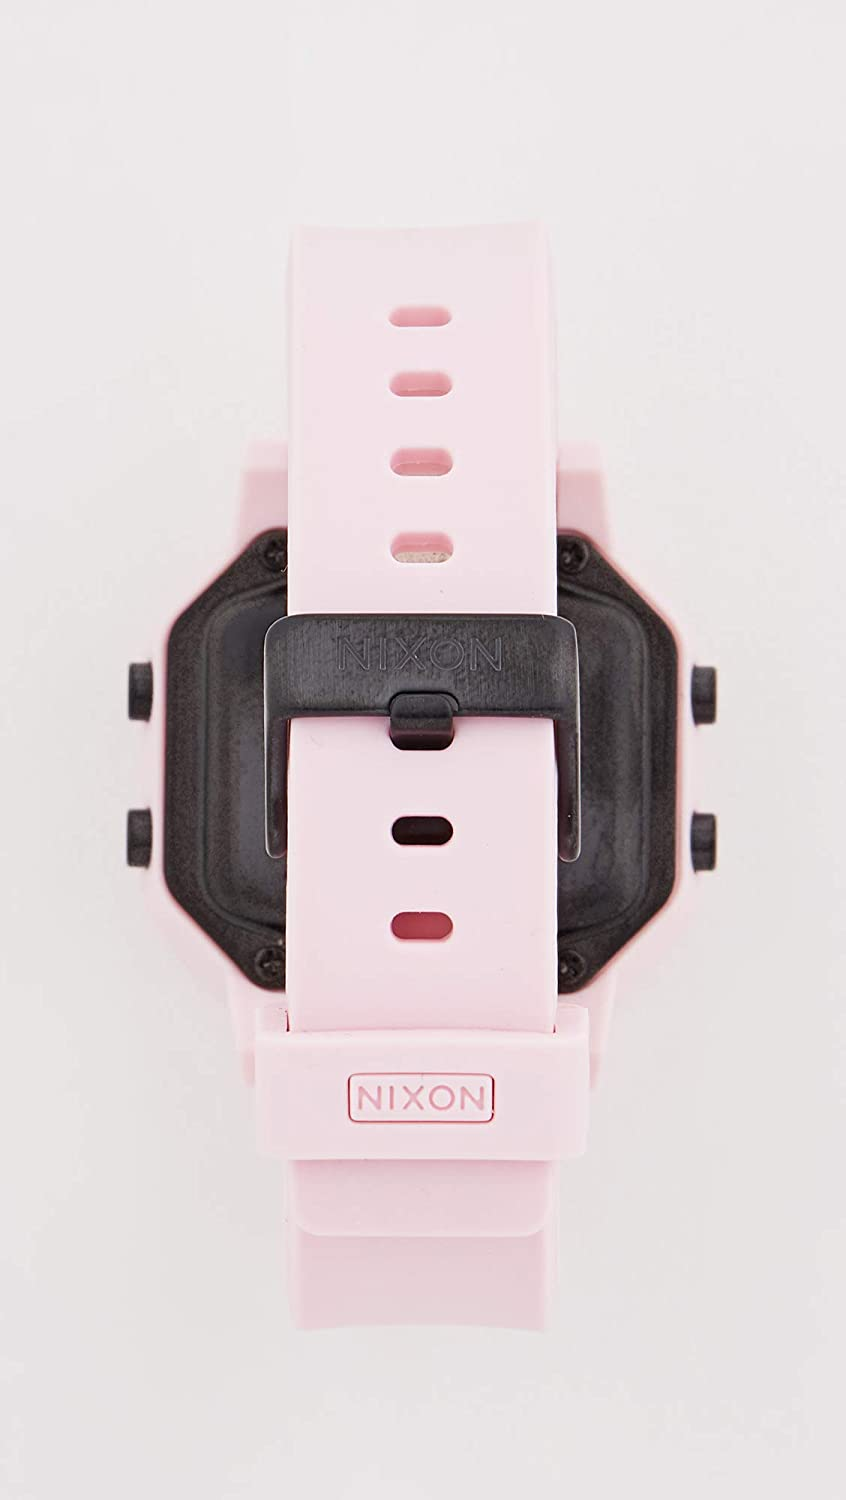 NIXON Siren A1210-100m Water Resistant Women's Digital Sport Watch (38mm Watch Face, 18mm-16mm Pu/Rubber/Silicone Band) Pale Pink